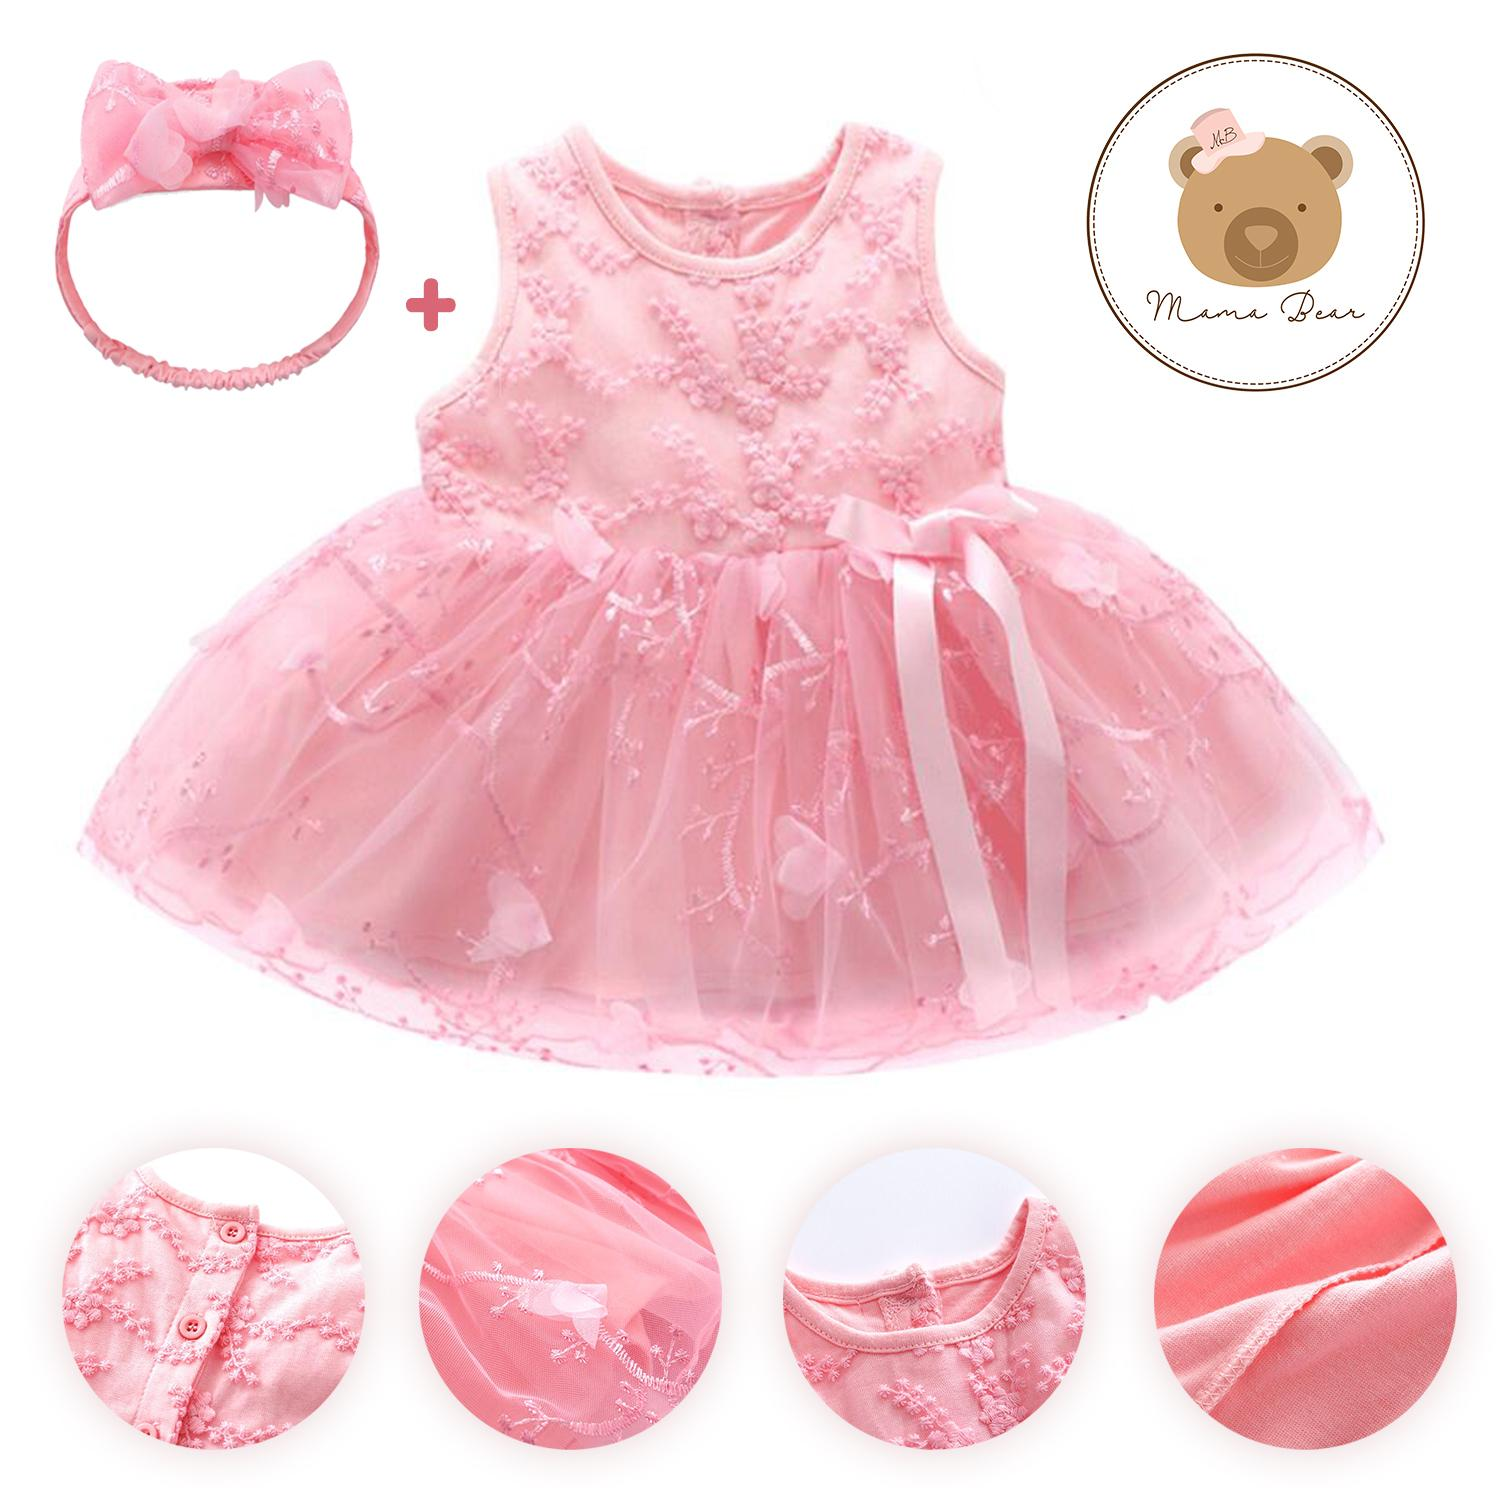 4f70610c7bd Baby Girl Baptismal Dress with Headband Dress Set Baby Lace Dress Party  dress Casual Dress Clothing